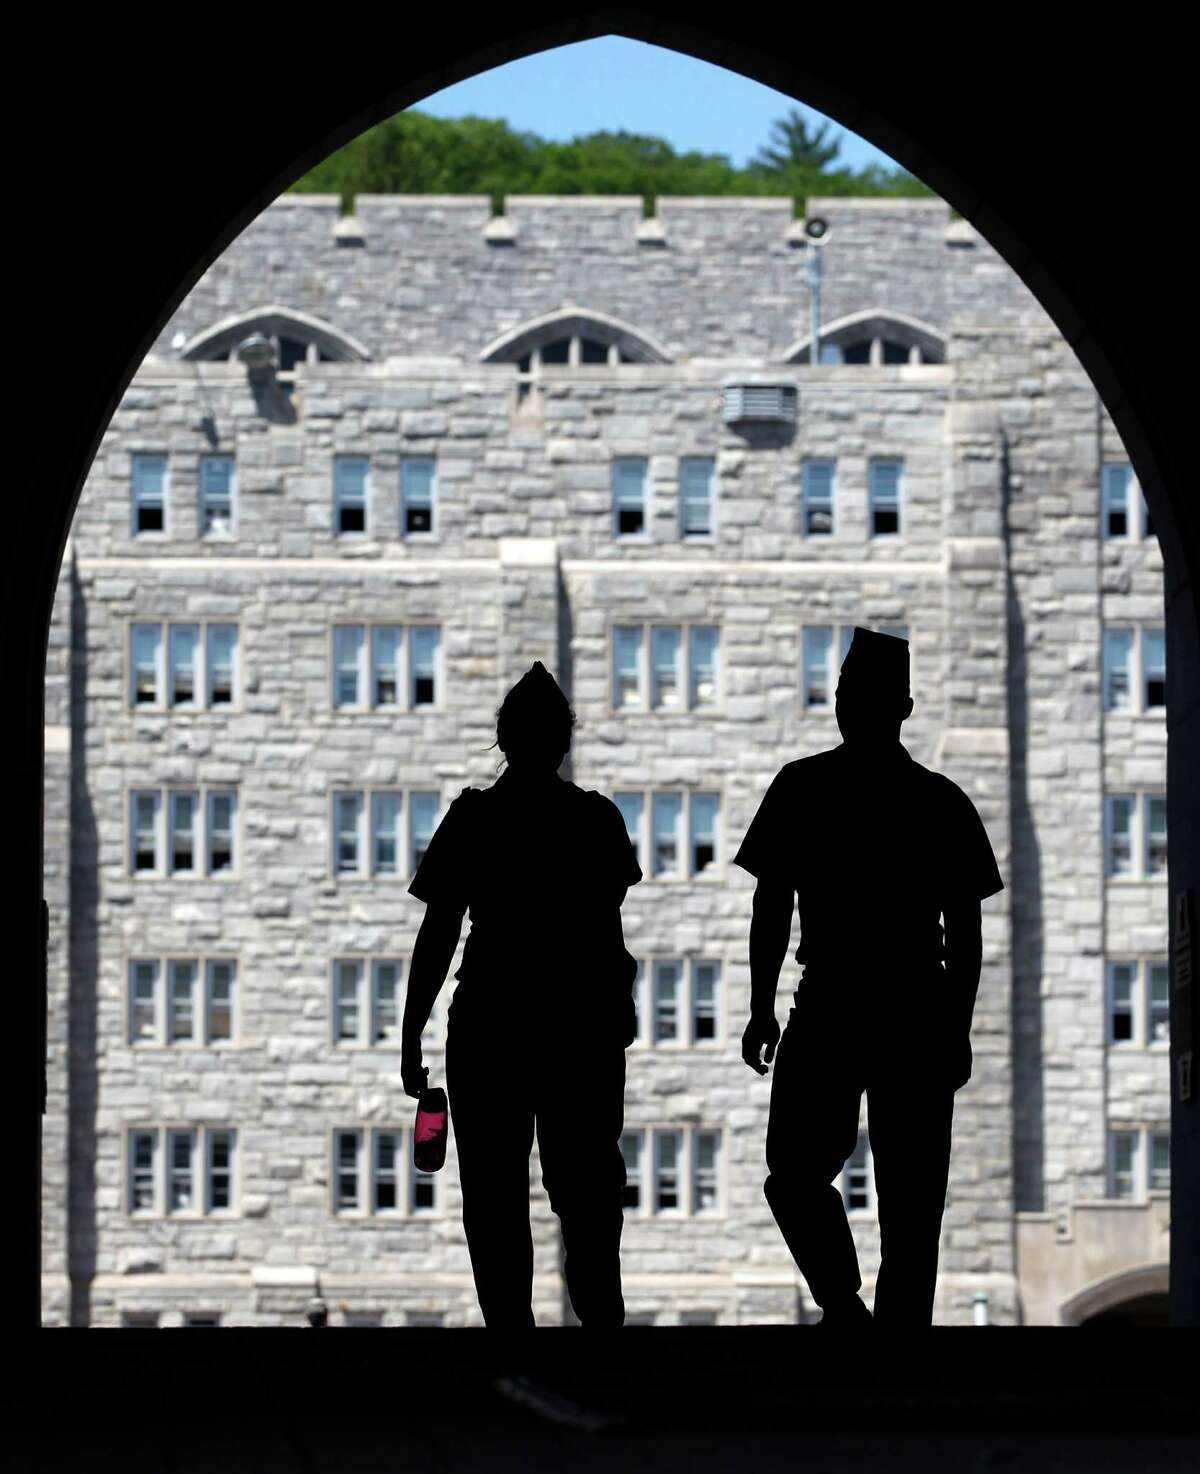 Cadets walk in a sally port at the U.S. Military Academy in West Point, N.Y., on Thursday, May 17, 2012. (AP Photo/Mike Groll)